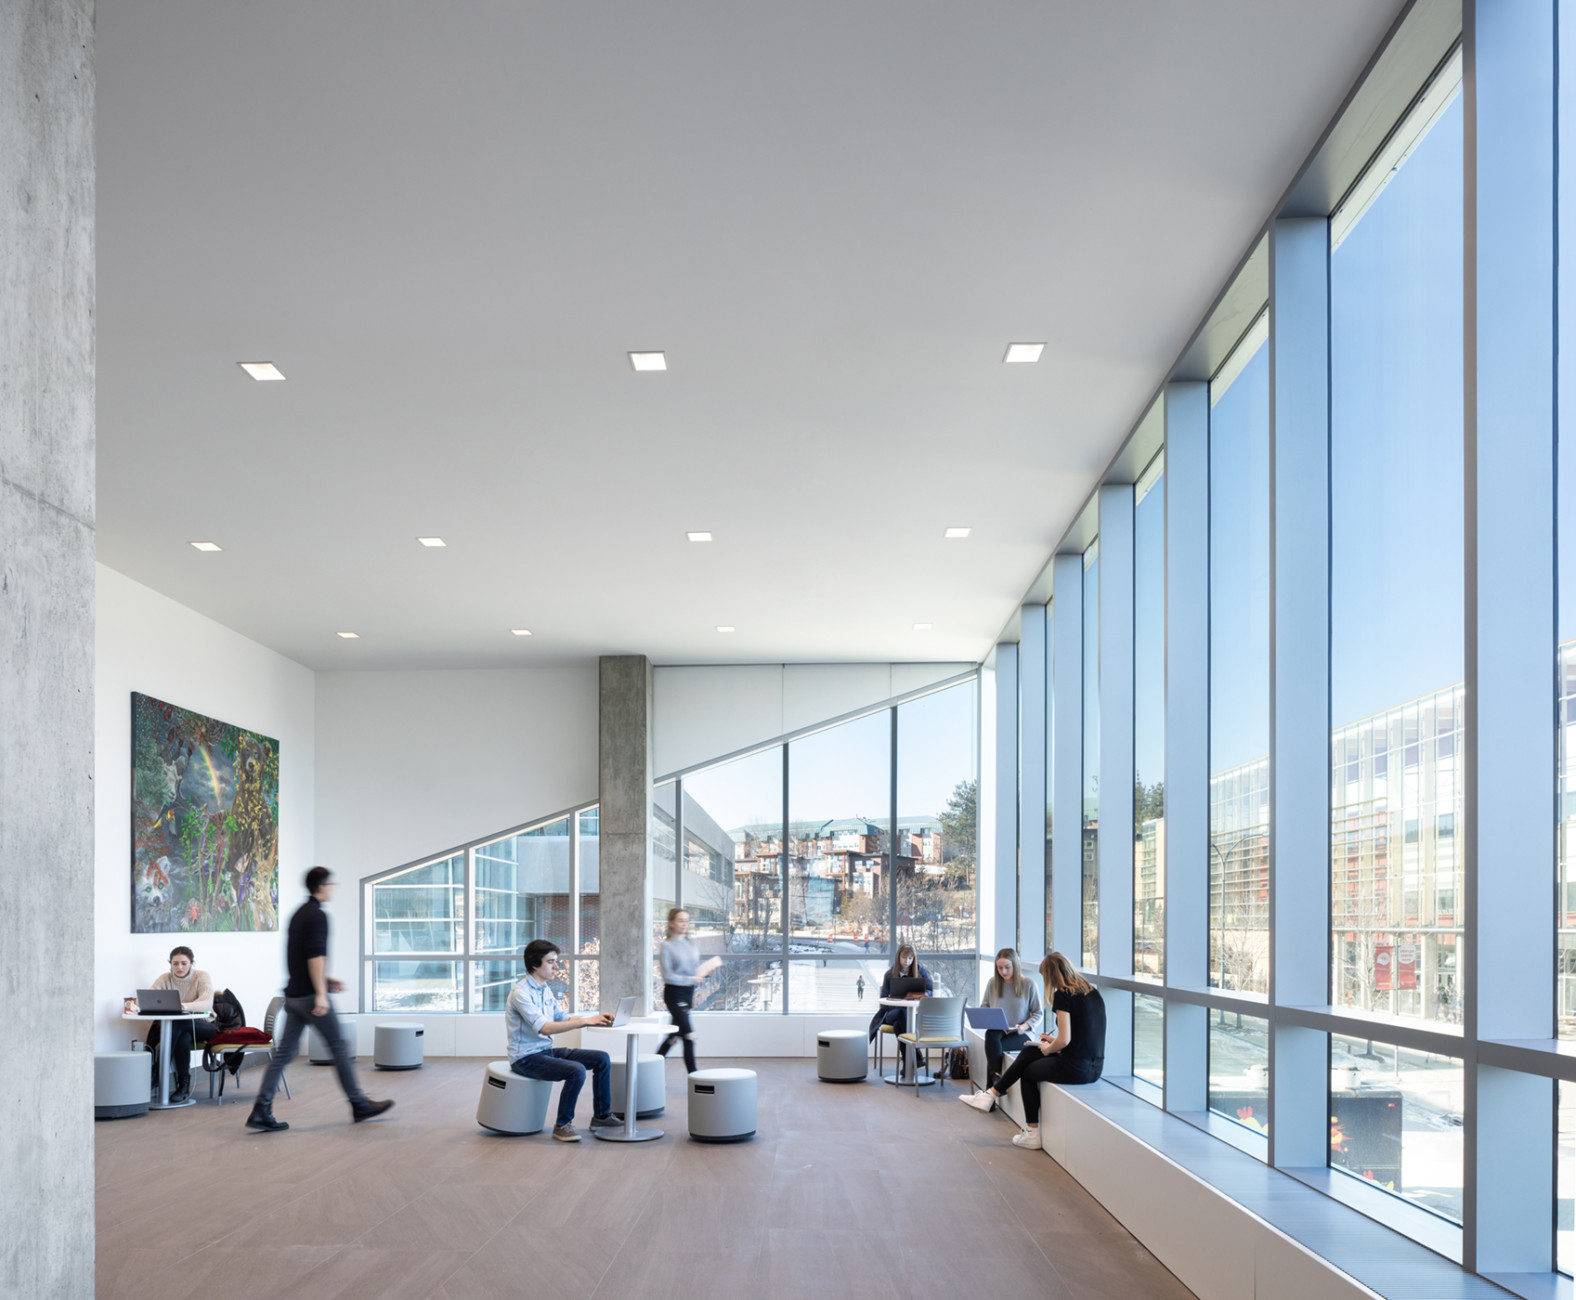 http://mtarch.com/projects/ubco-commons/#